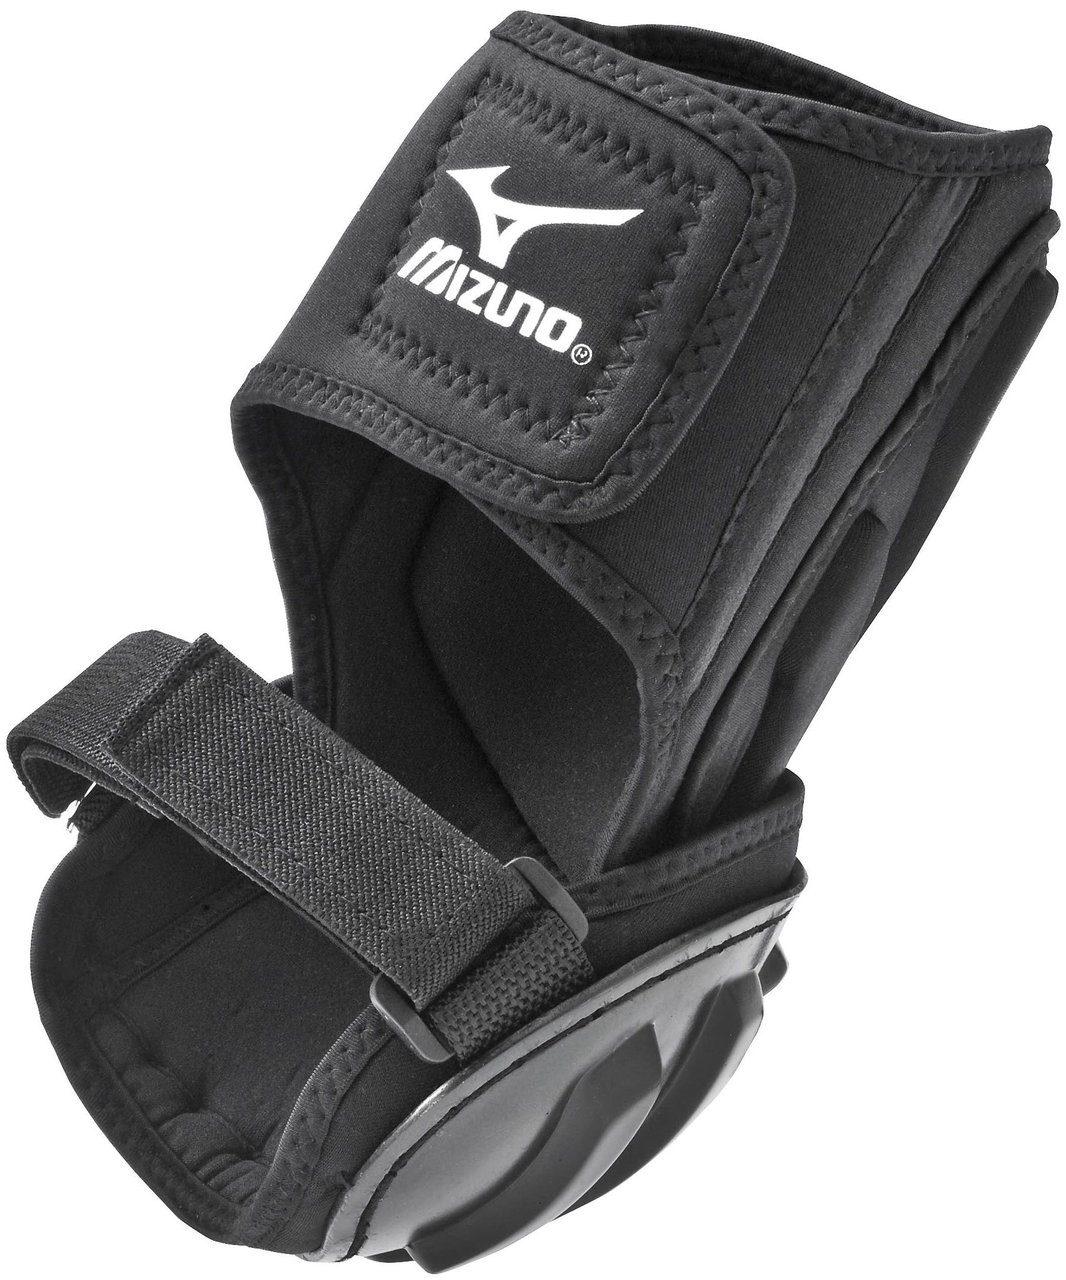 mizuno-batters-elbow-guard 380148 Mizuno 041969132234 Protect your elbow while batting. Molded ABS plastic cap for added